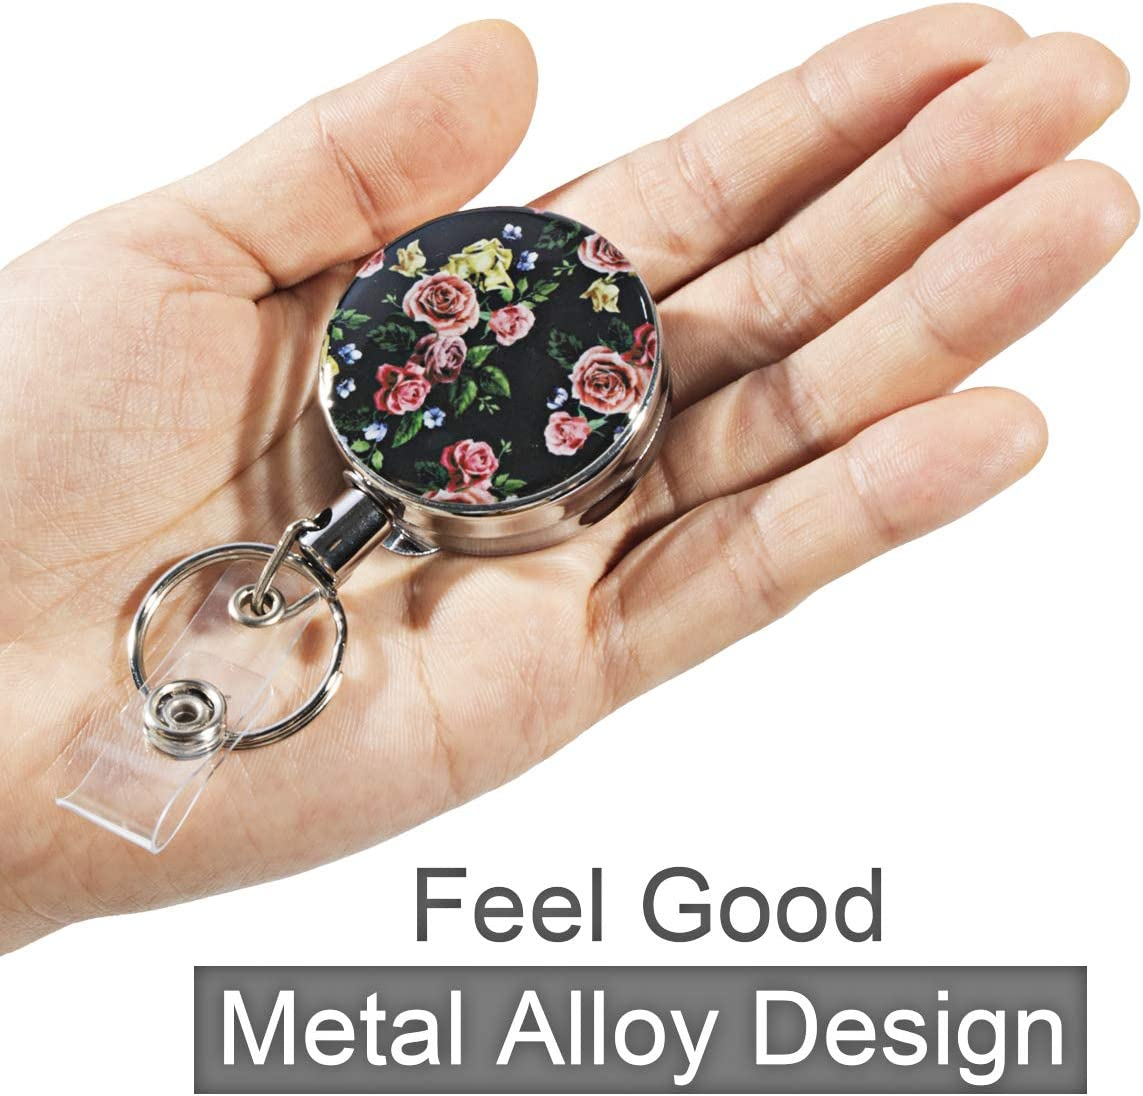 All Metal Casing, 25 Steel Wire Cord, Reinforced Strap Printed Heavy Duty Retractable Badge Holder with Keychain Ring Clip Metal Badge Reel with Belt Clip Key Ring for Name Card Keychain